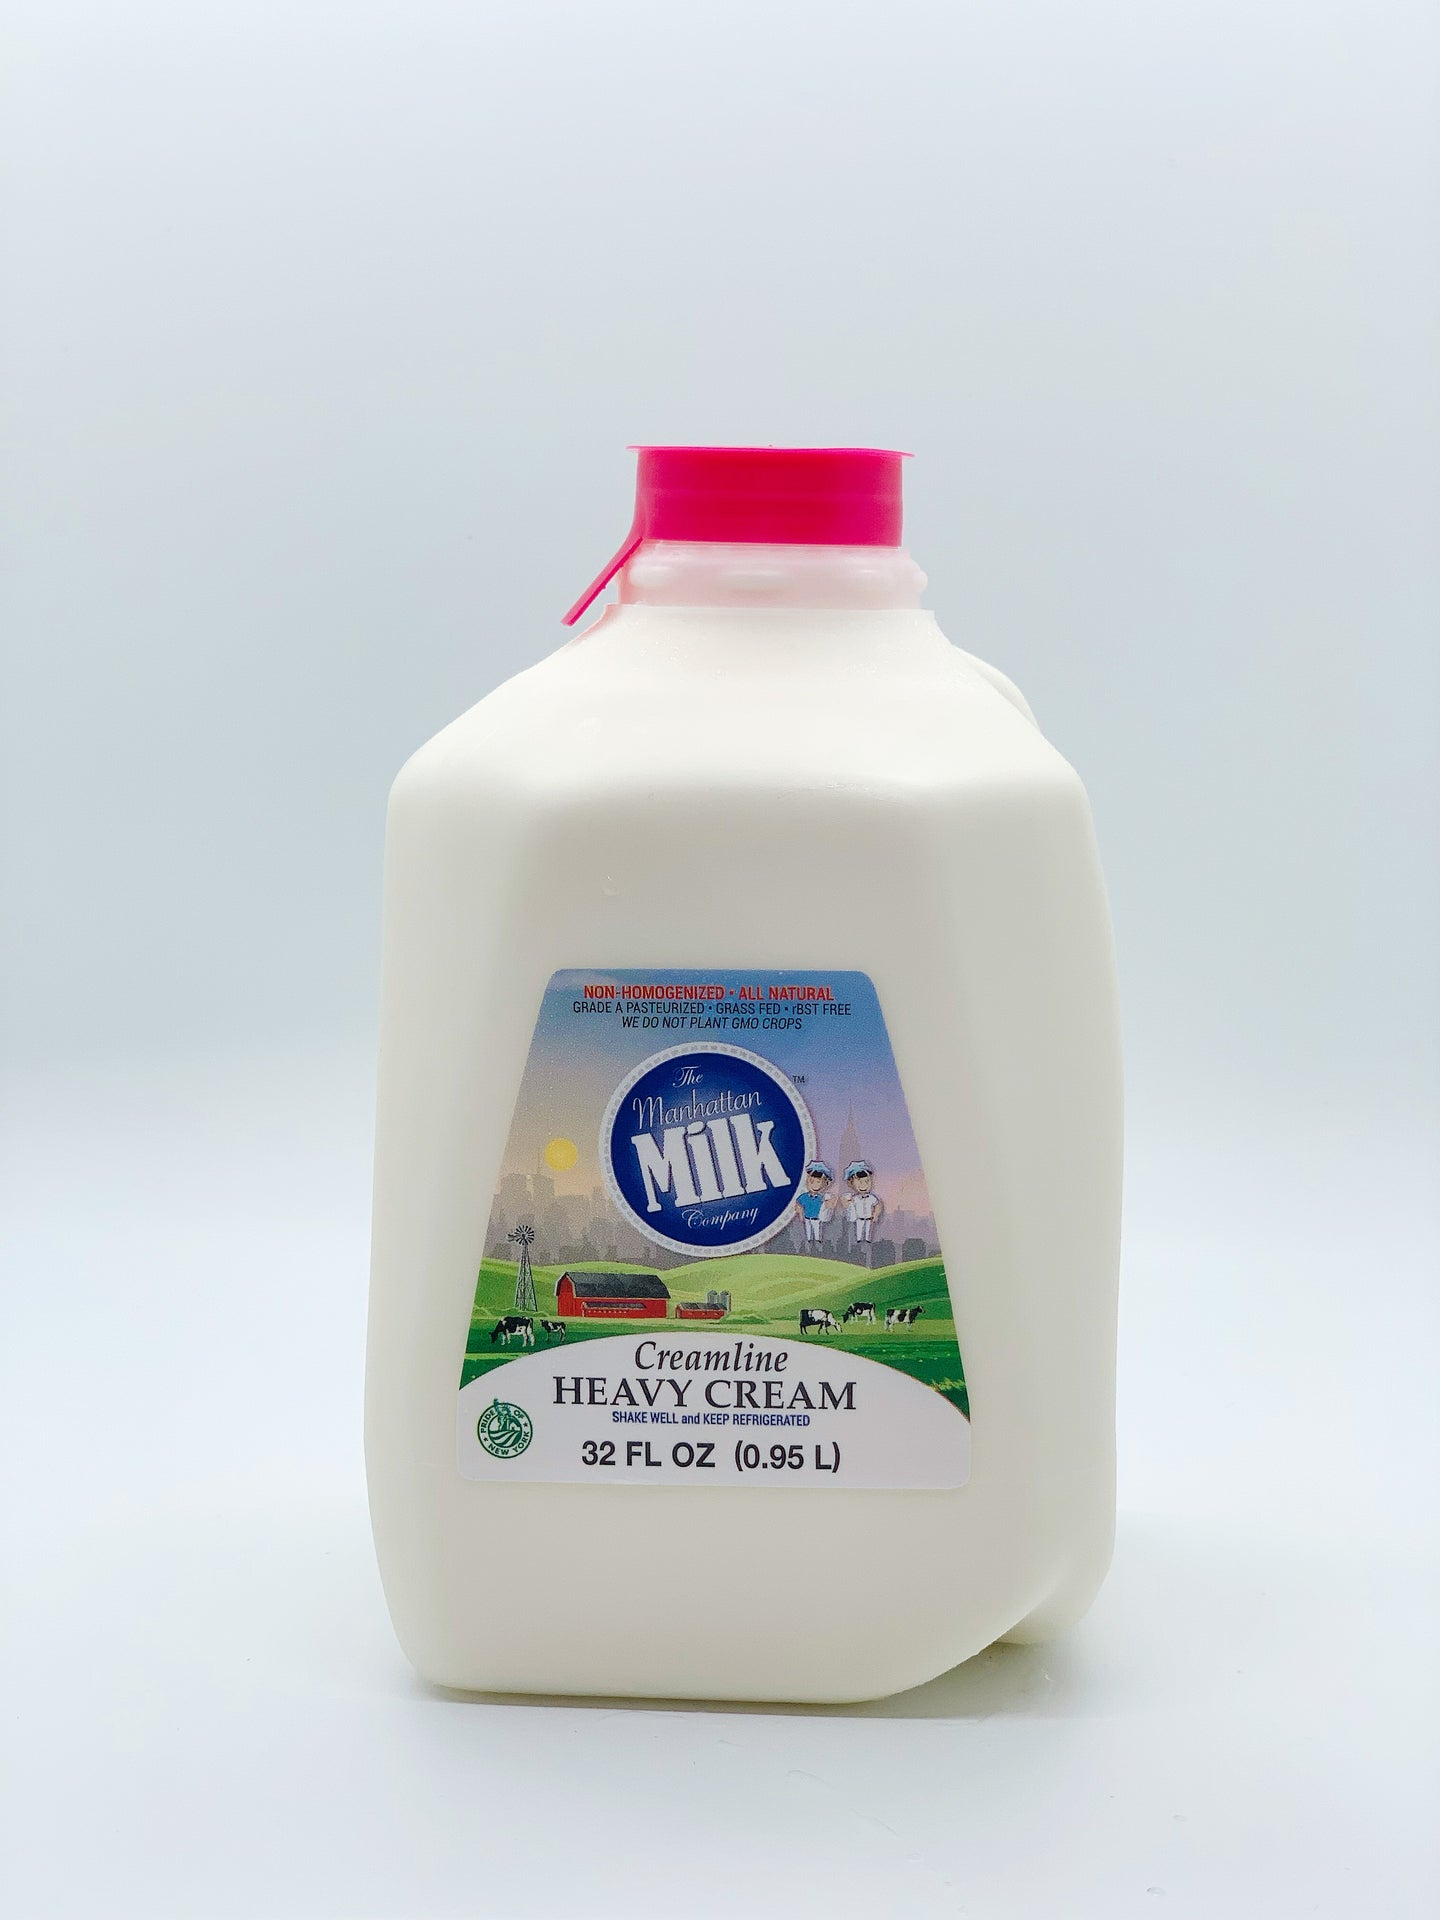 Manhattan Milk Heavy Cream Creamline Grass-Fed Quart